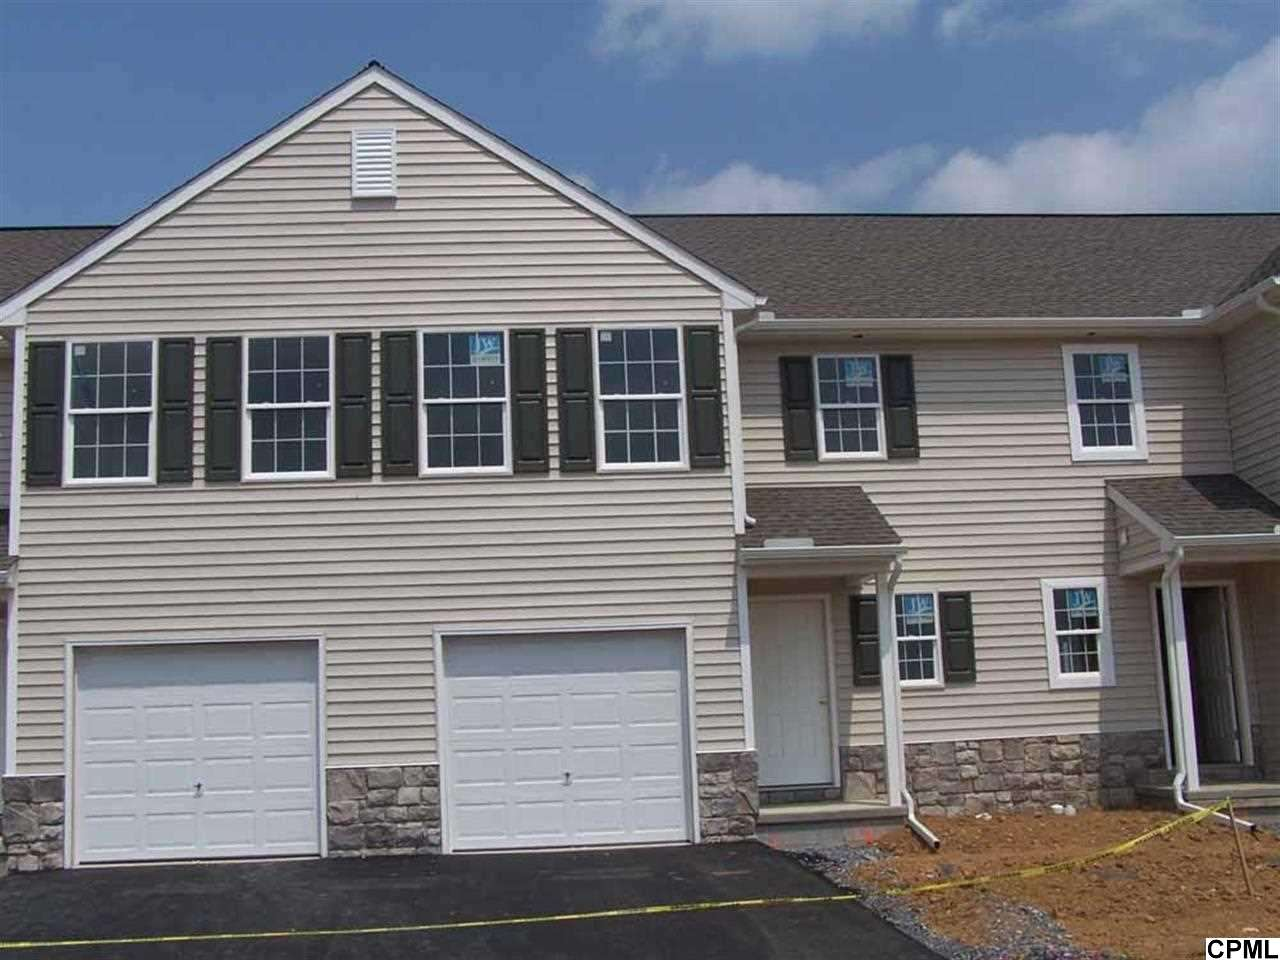 168 N Village Cir, Palmyra, PA 17078